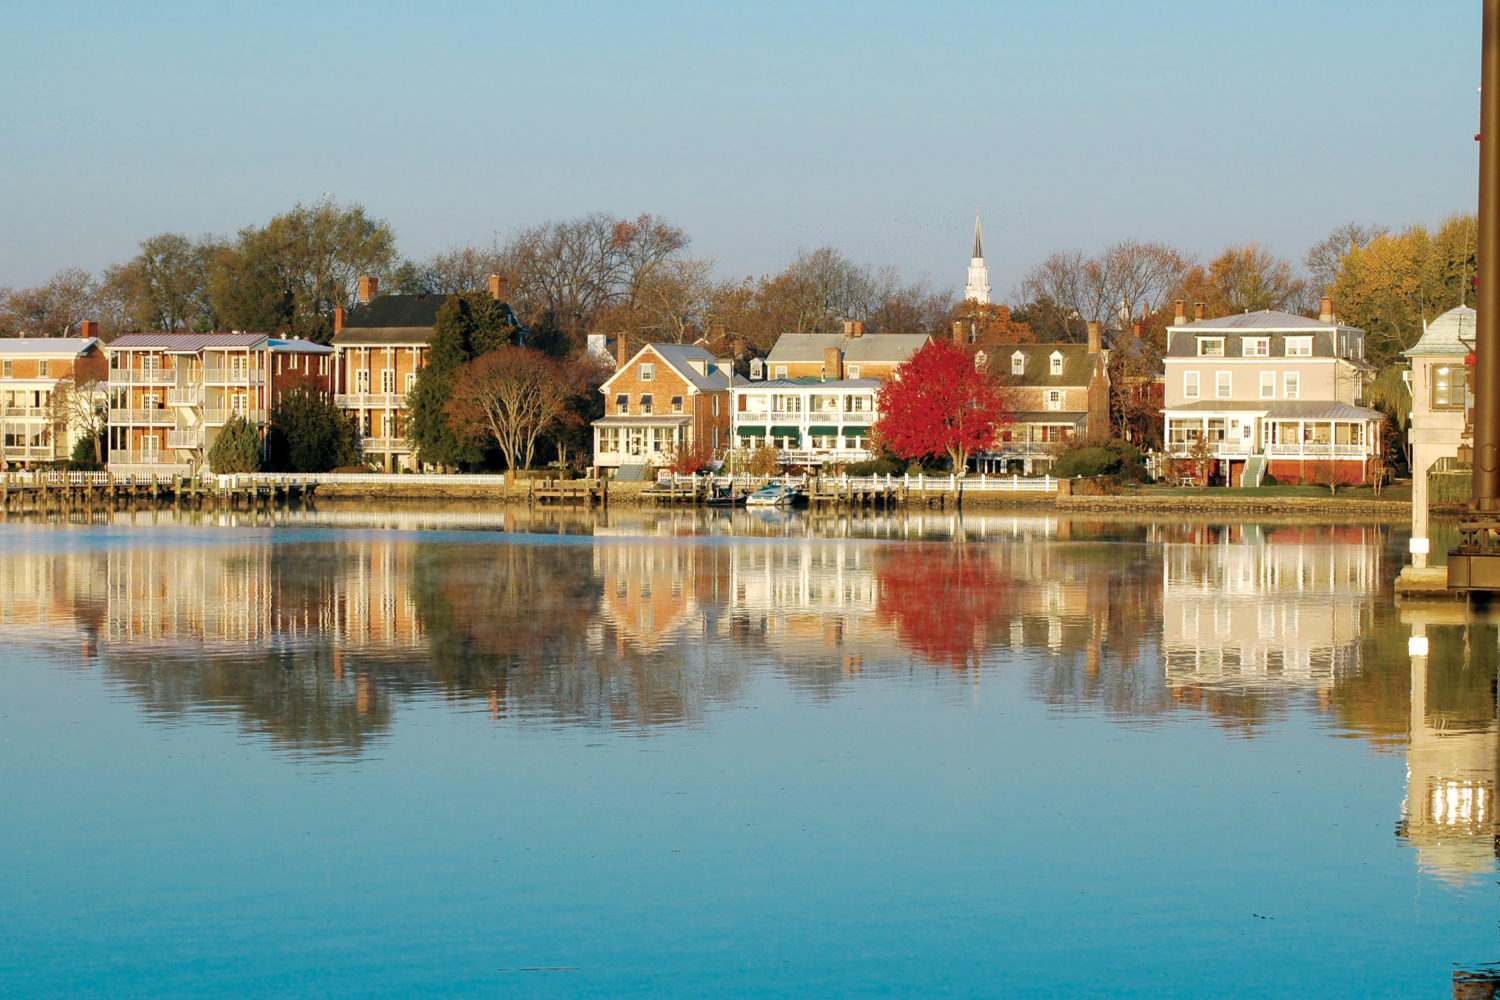 Riverfront beauty: Chestertown. Photograph by Bernadette Bowman.